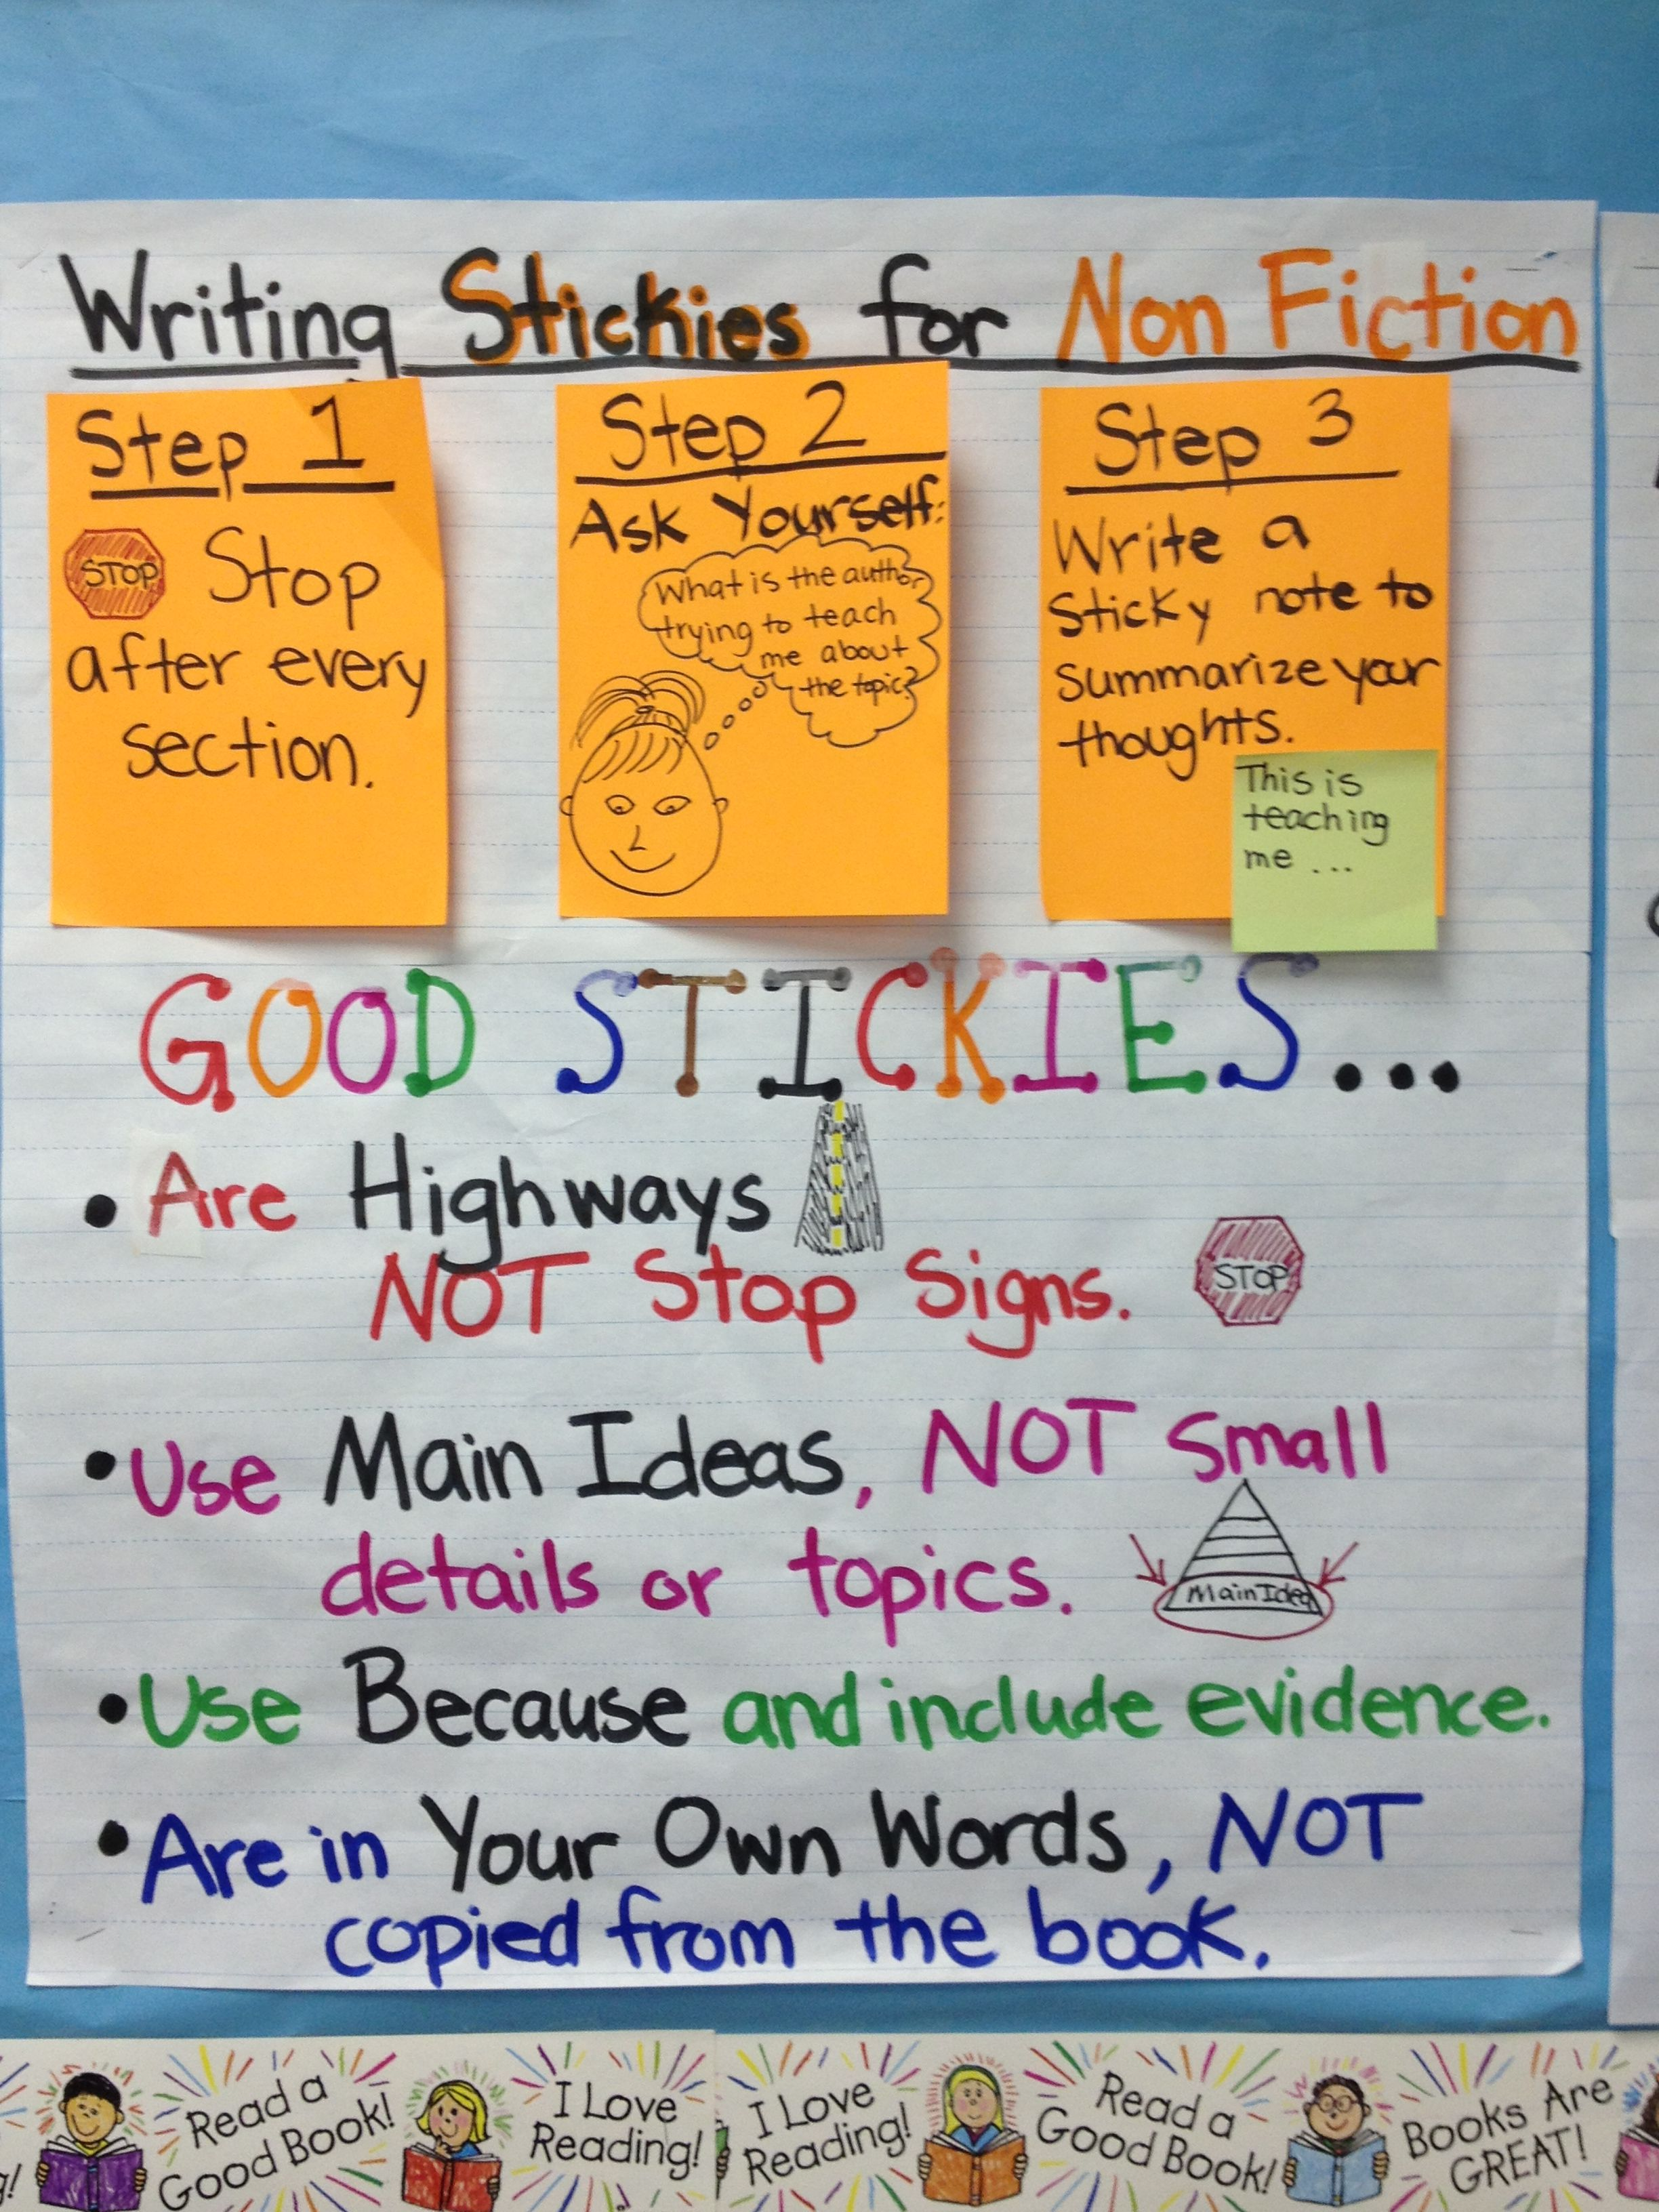 Writing Sticky Notes For Non Fiction Texts